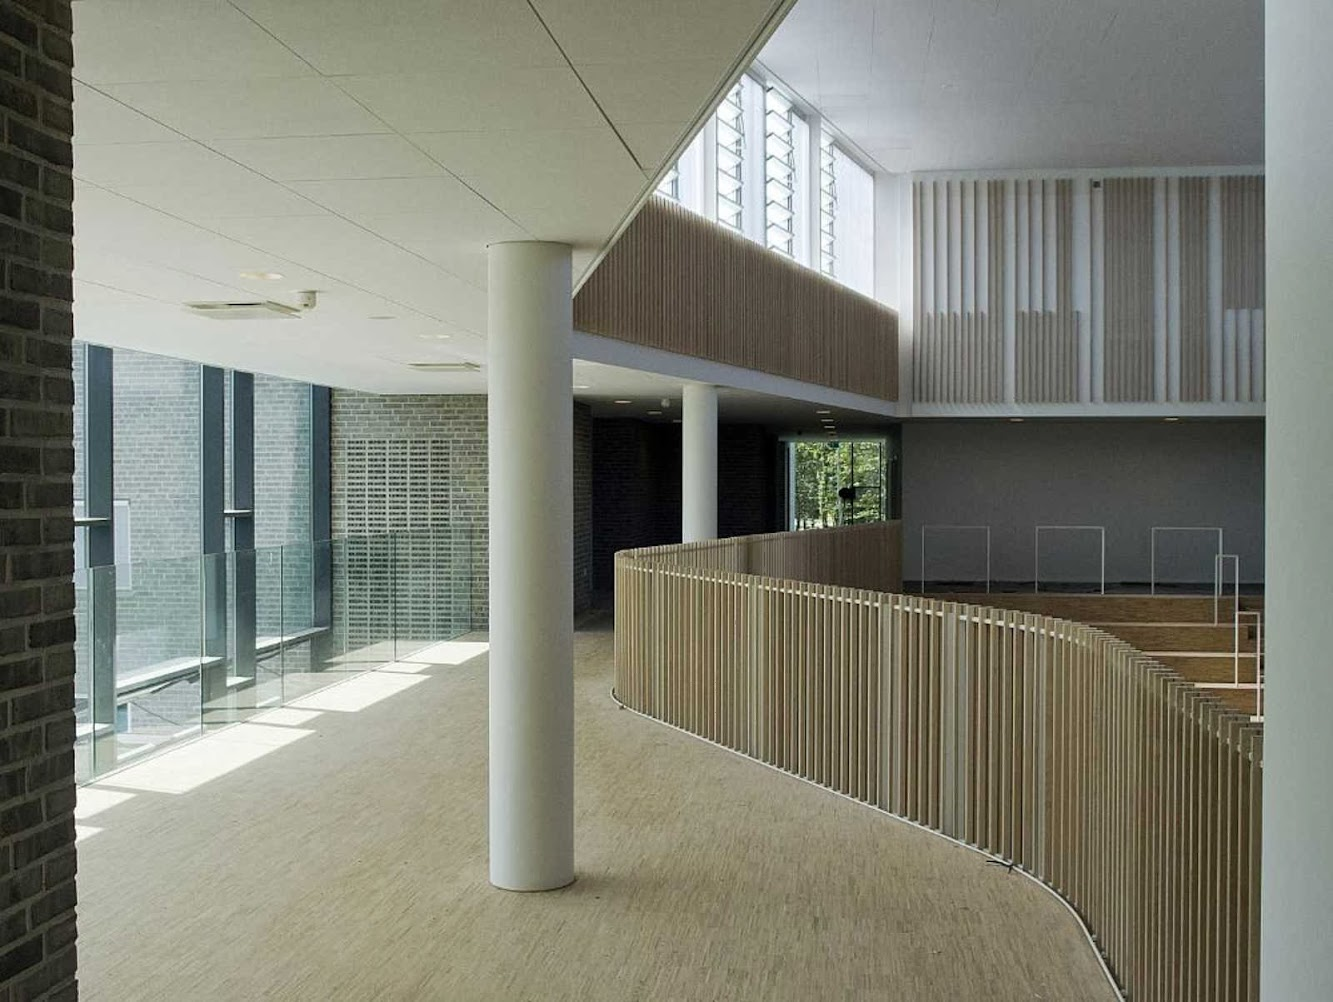 15-International-School-Ikast-Brande-by-C.F.-Møller-Architects